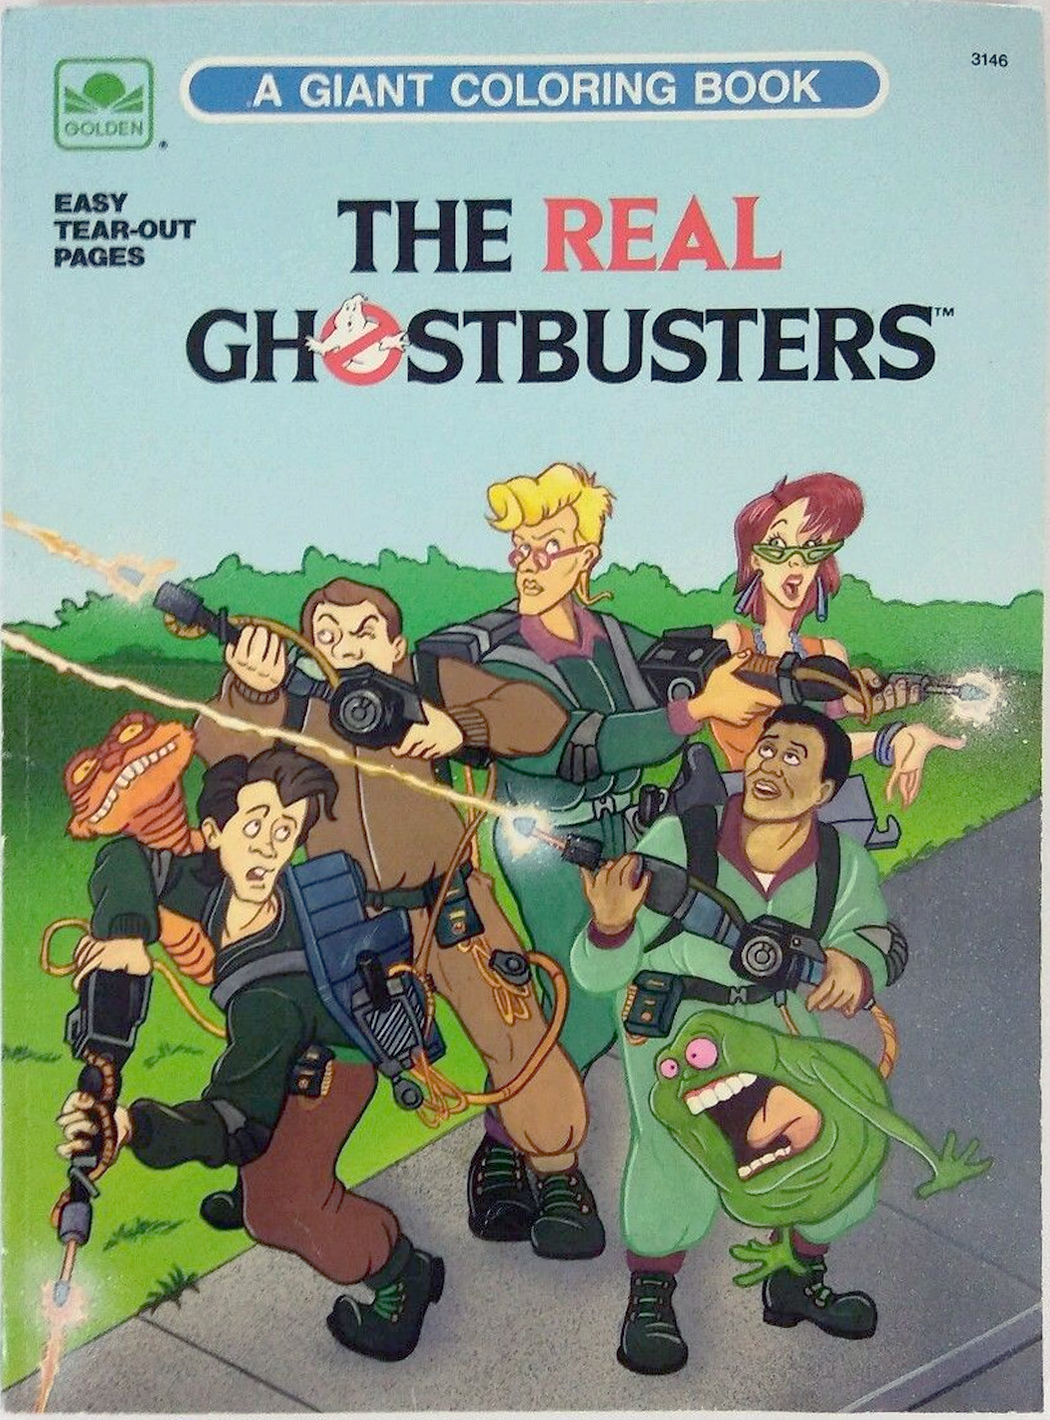 the real ghostbusters a giant coloring book ghostbusters wiki fandom powered by wikia - Giant Coloring Book